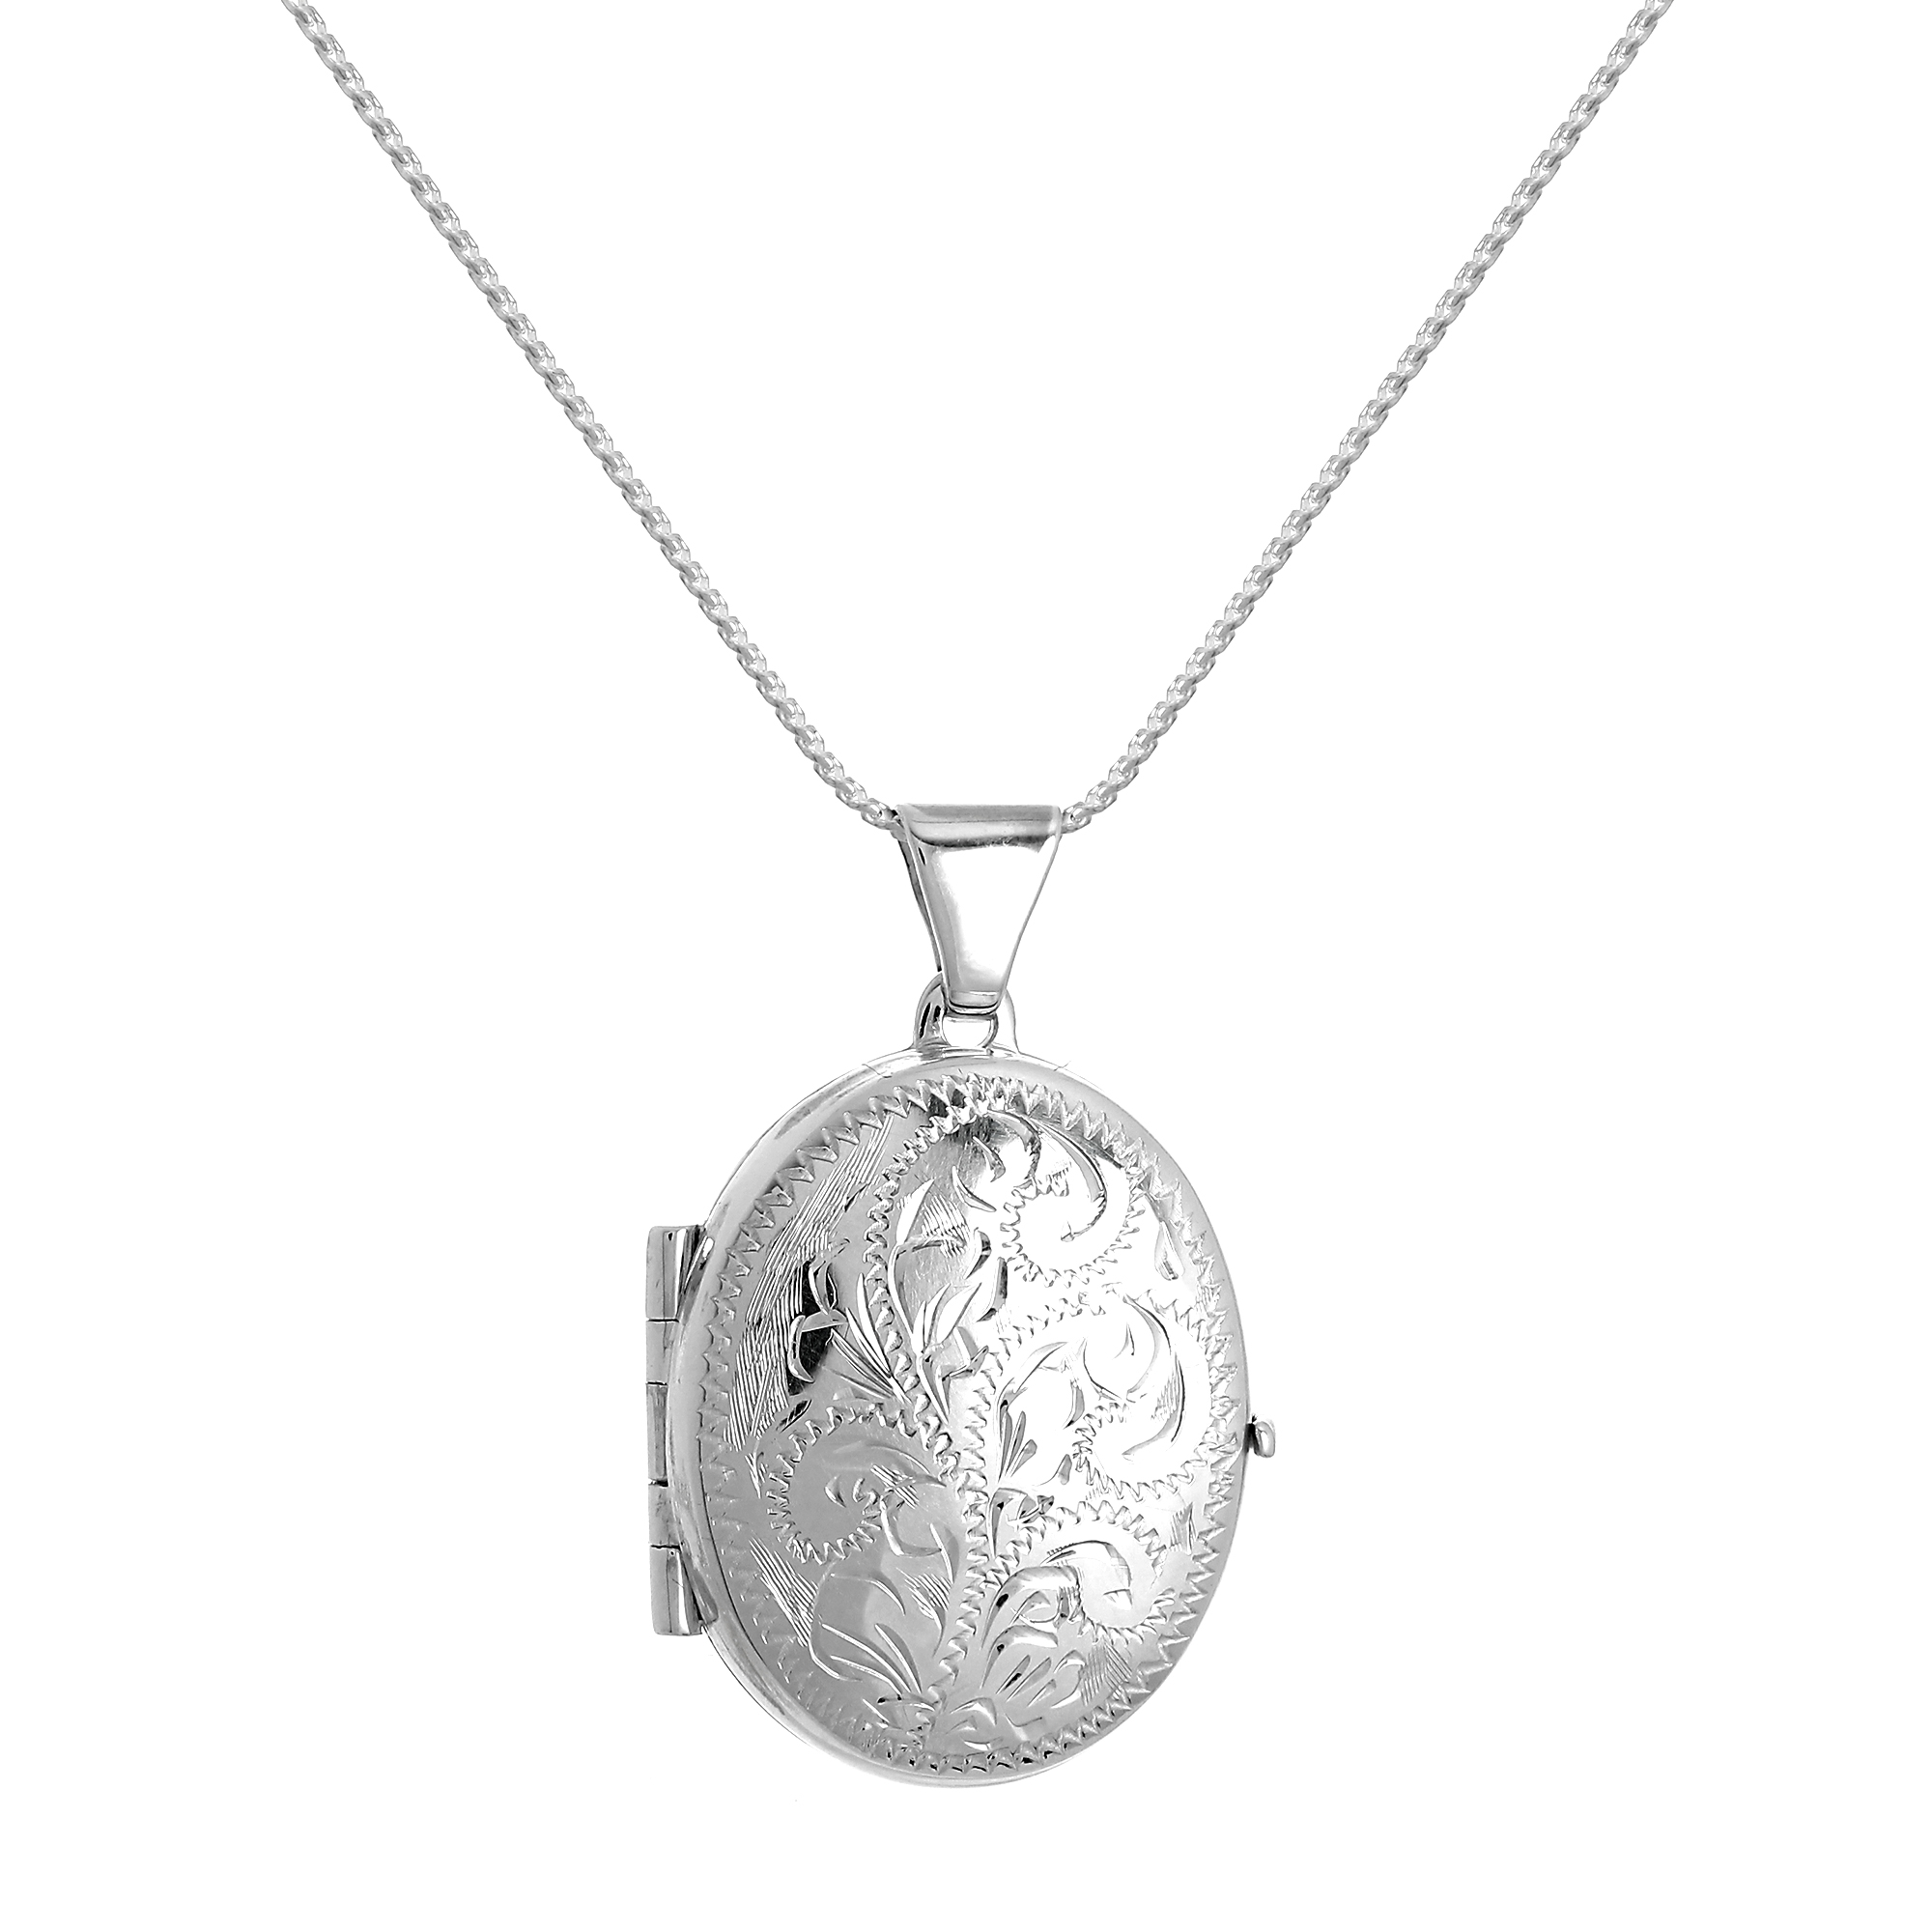 An image of Sterling Silver Engraved Oval 4 Photo Family Locket on 22 Inch Chain